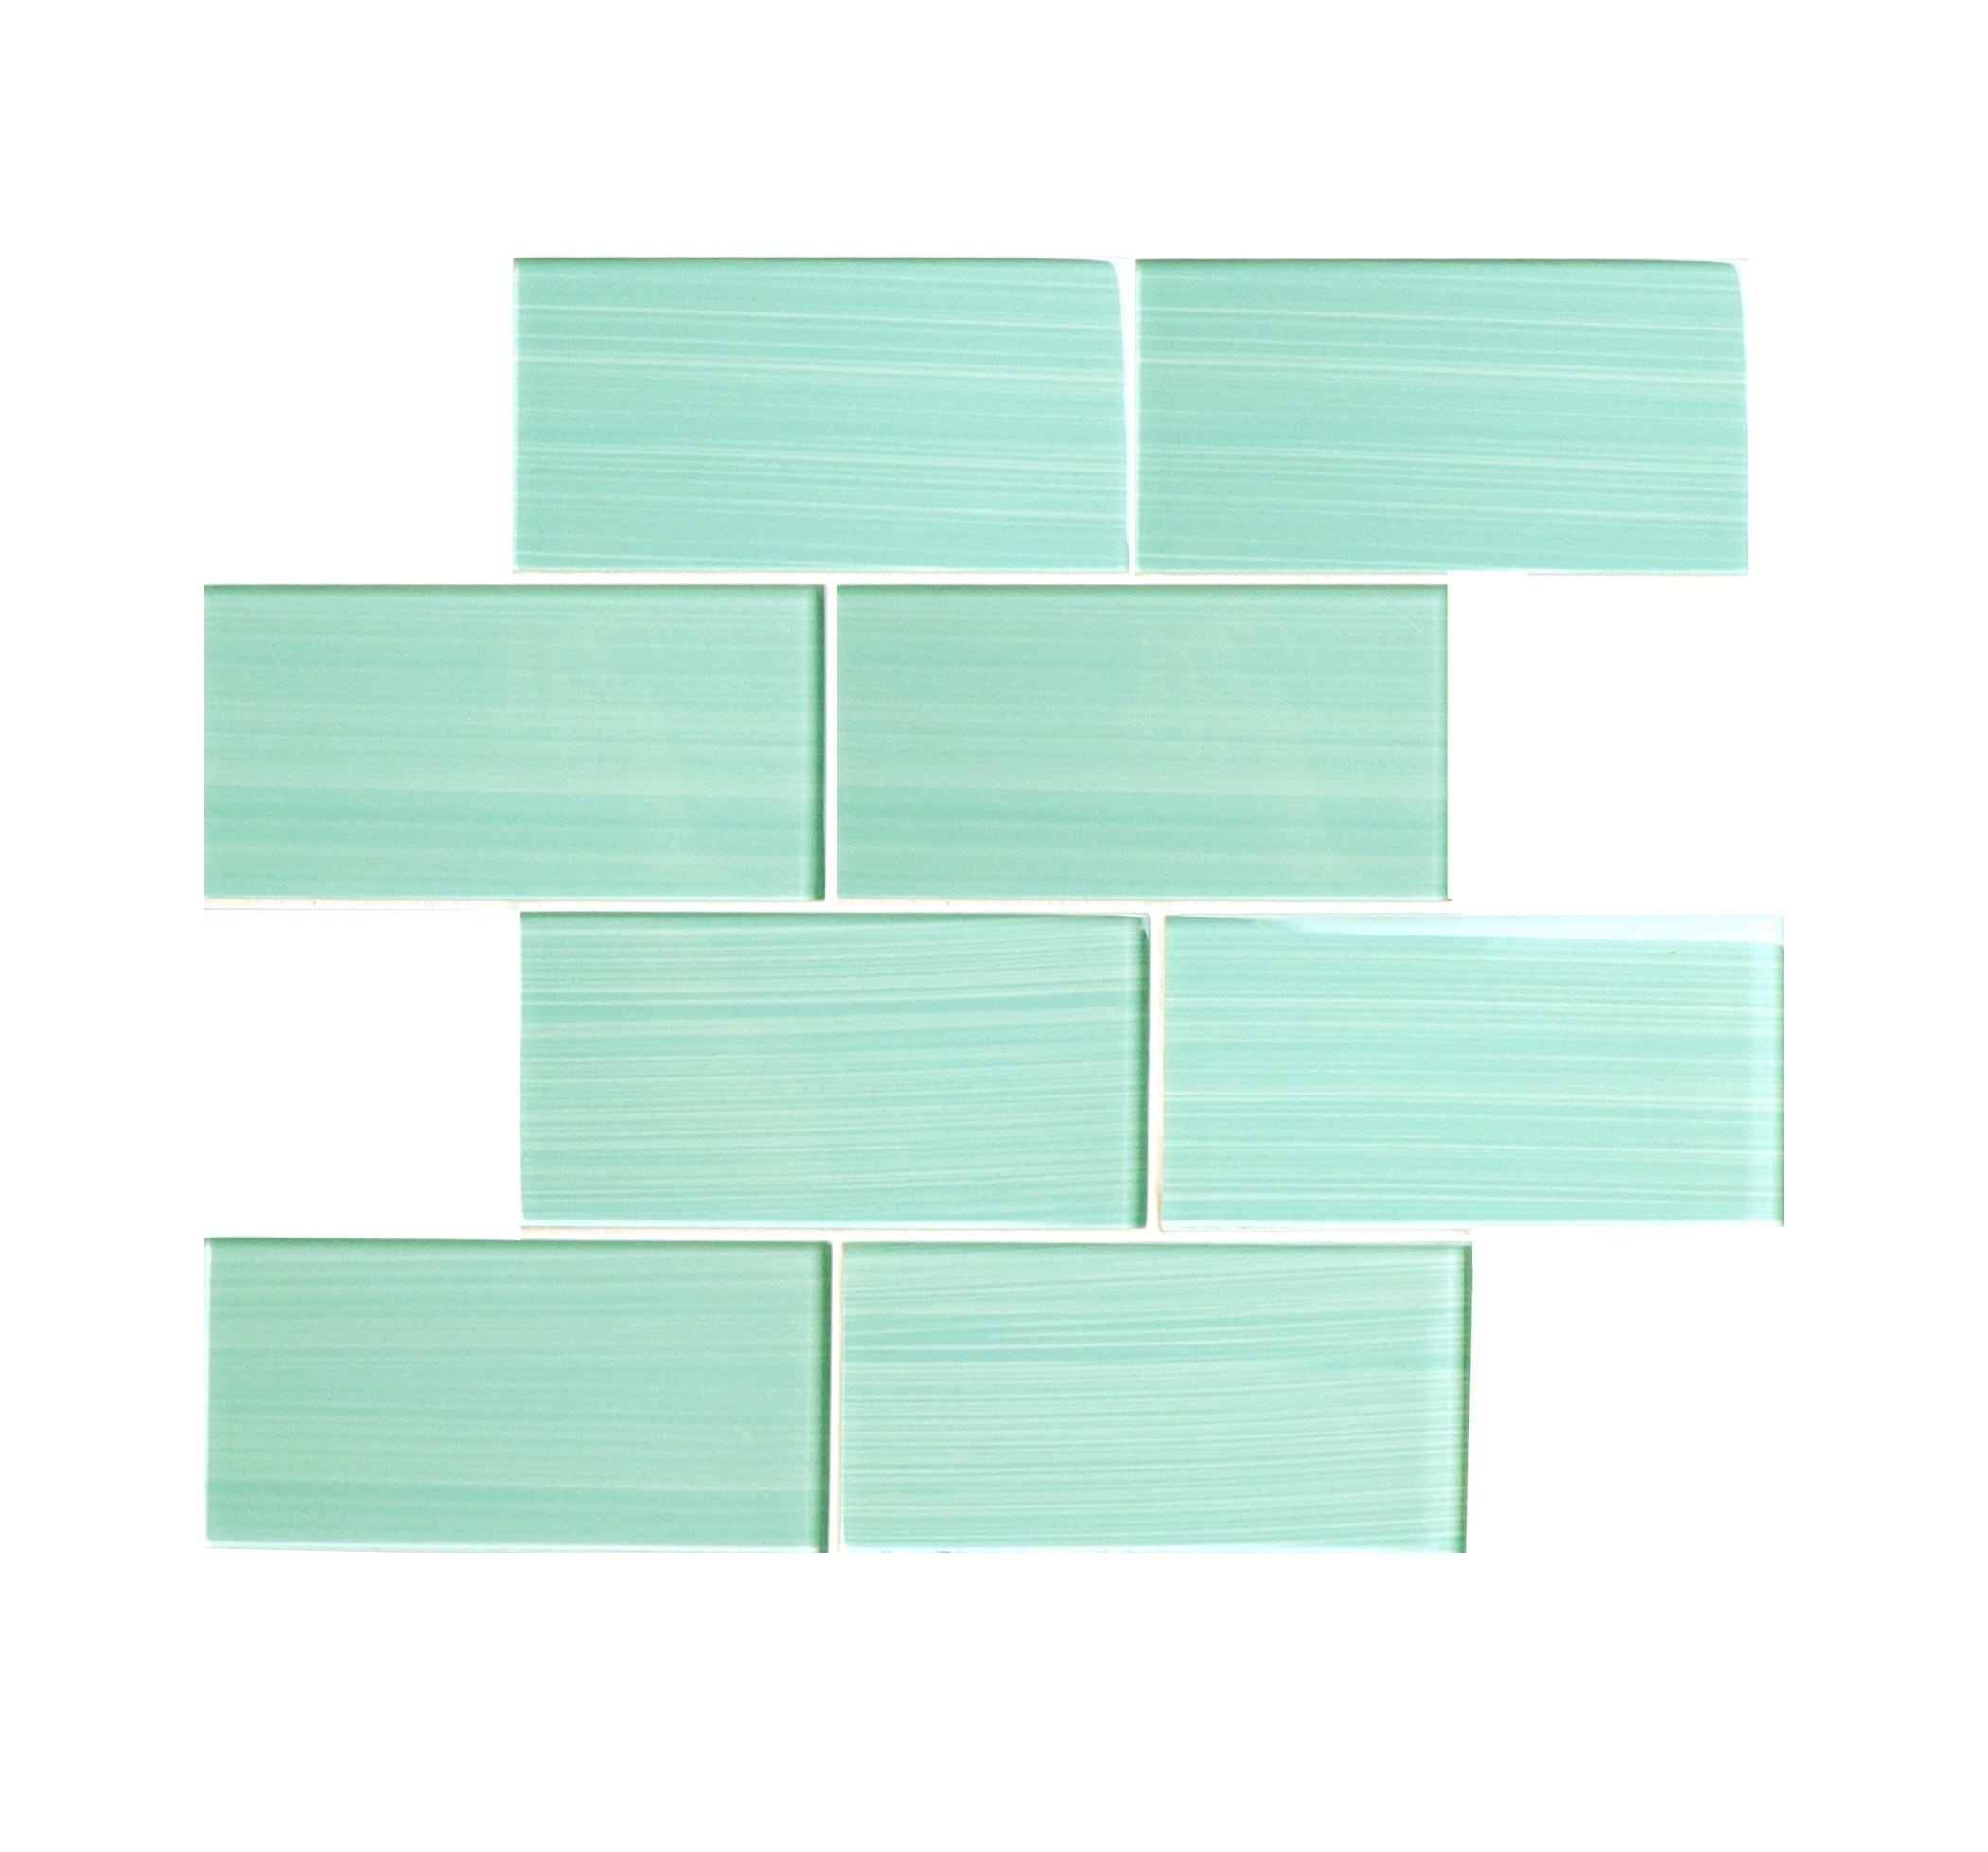 """Glass Mosaic / 16 x 12 x 0.31 inches / Glossy Hand Painted 3"""" x 6"""" Glass Subway Tile in Light Teal 0"""